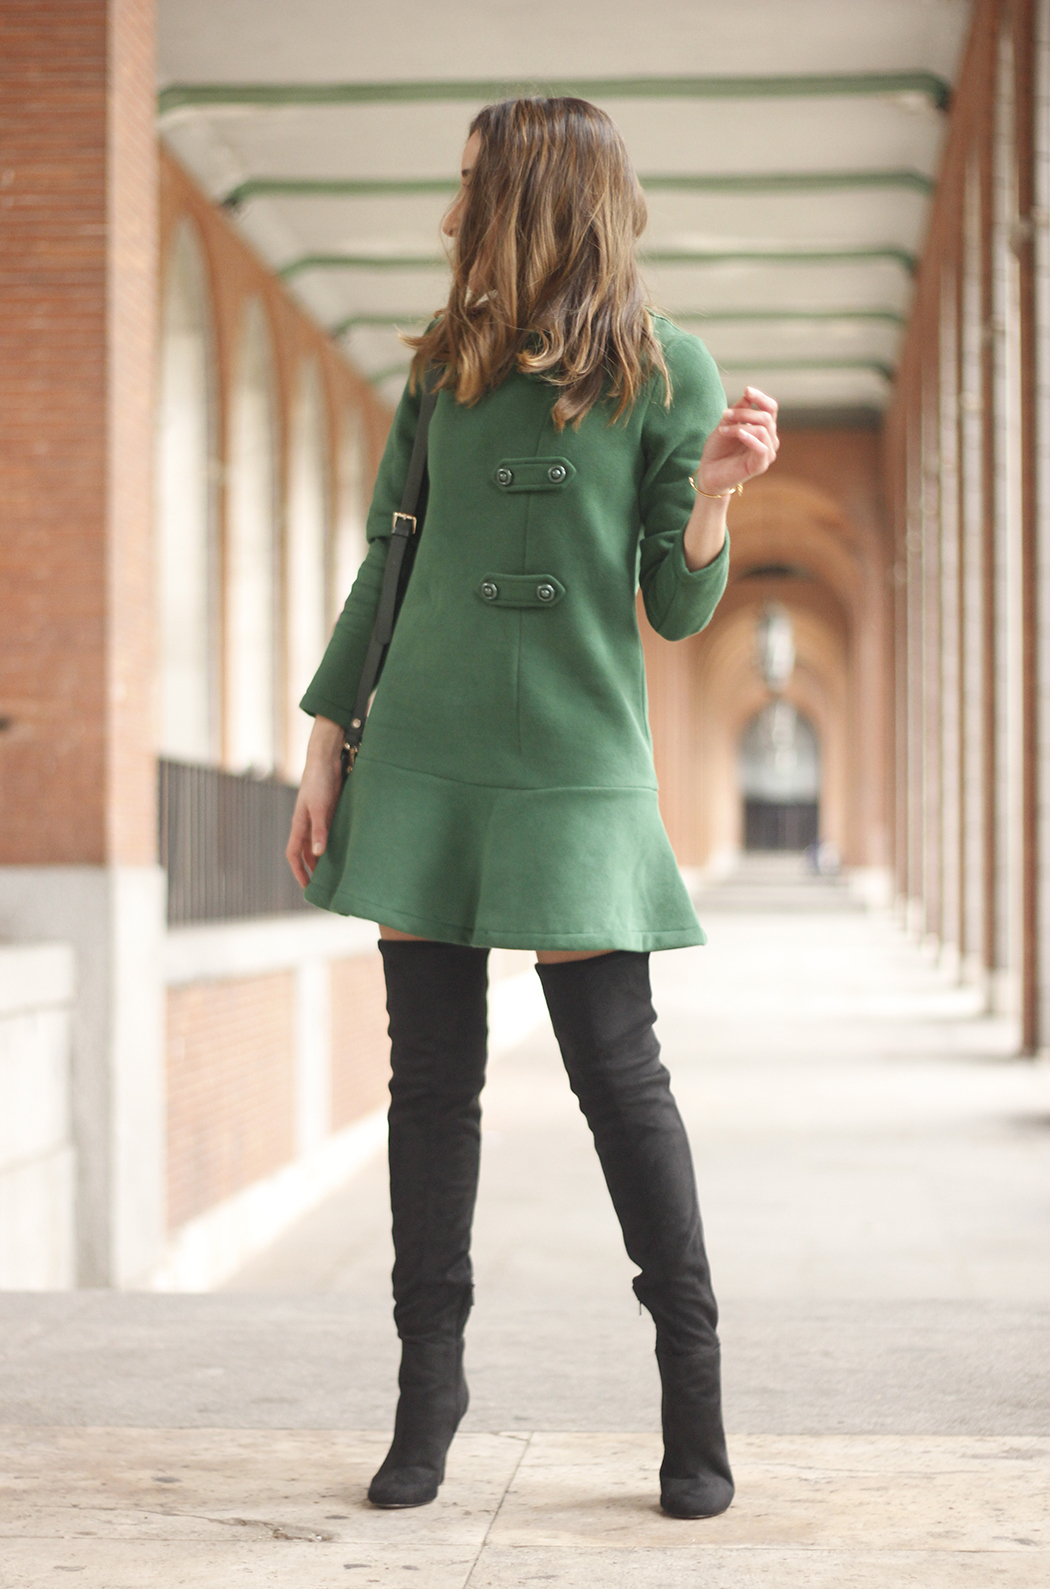 Green Dress Over the knee boots mango outfit sunnies accessories bag06